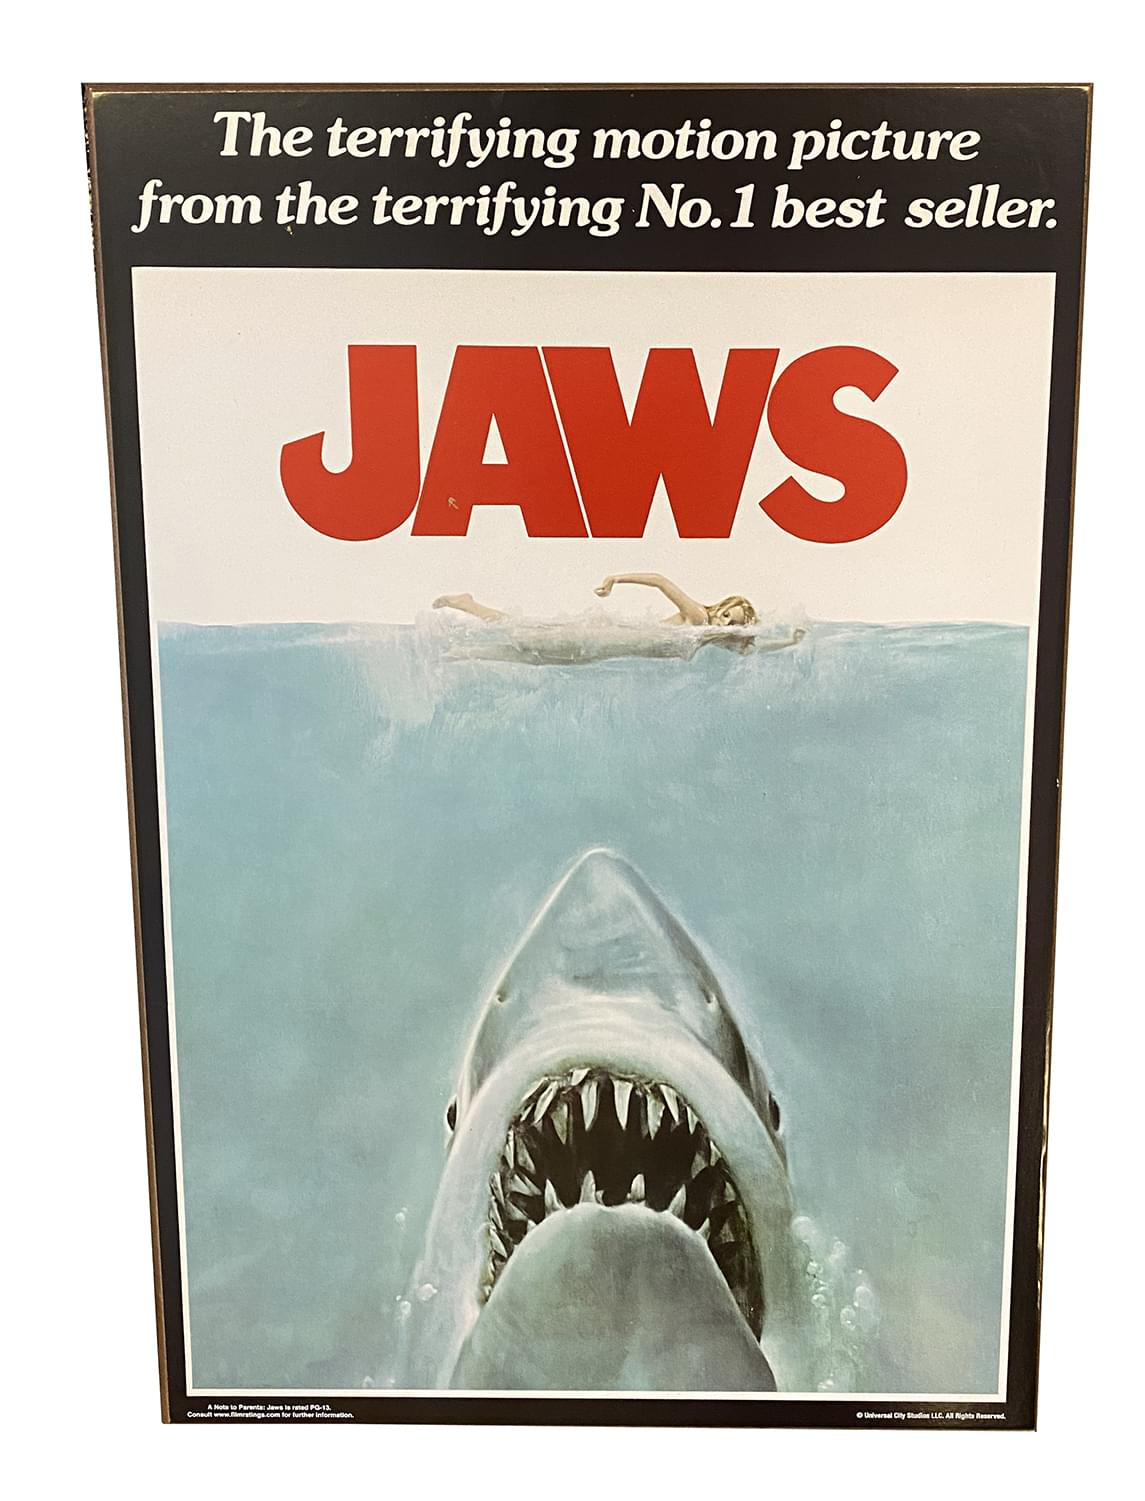 JAWS Movie Poster 13 x 19 Inch Printed Wood Wall Sign